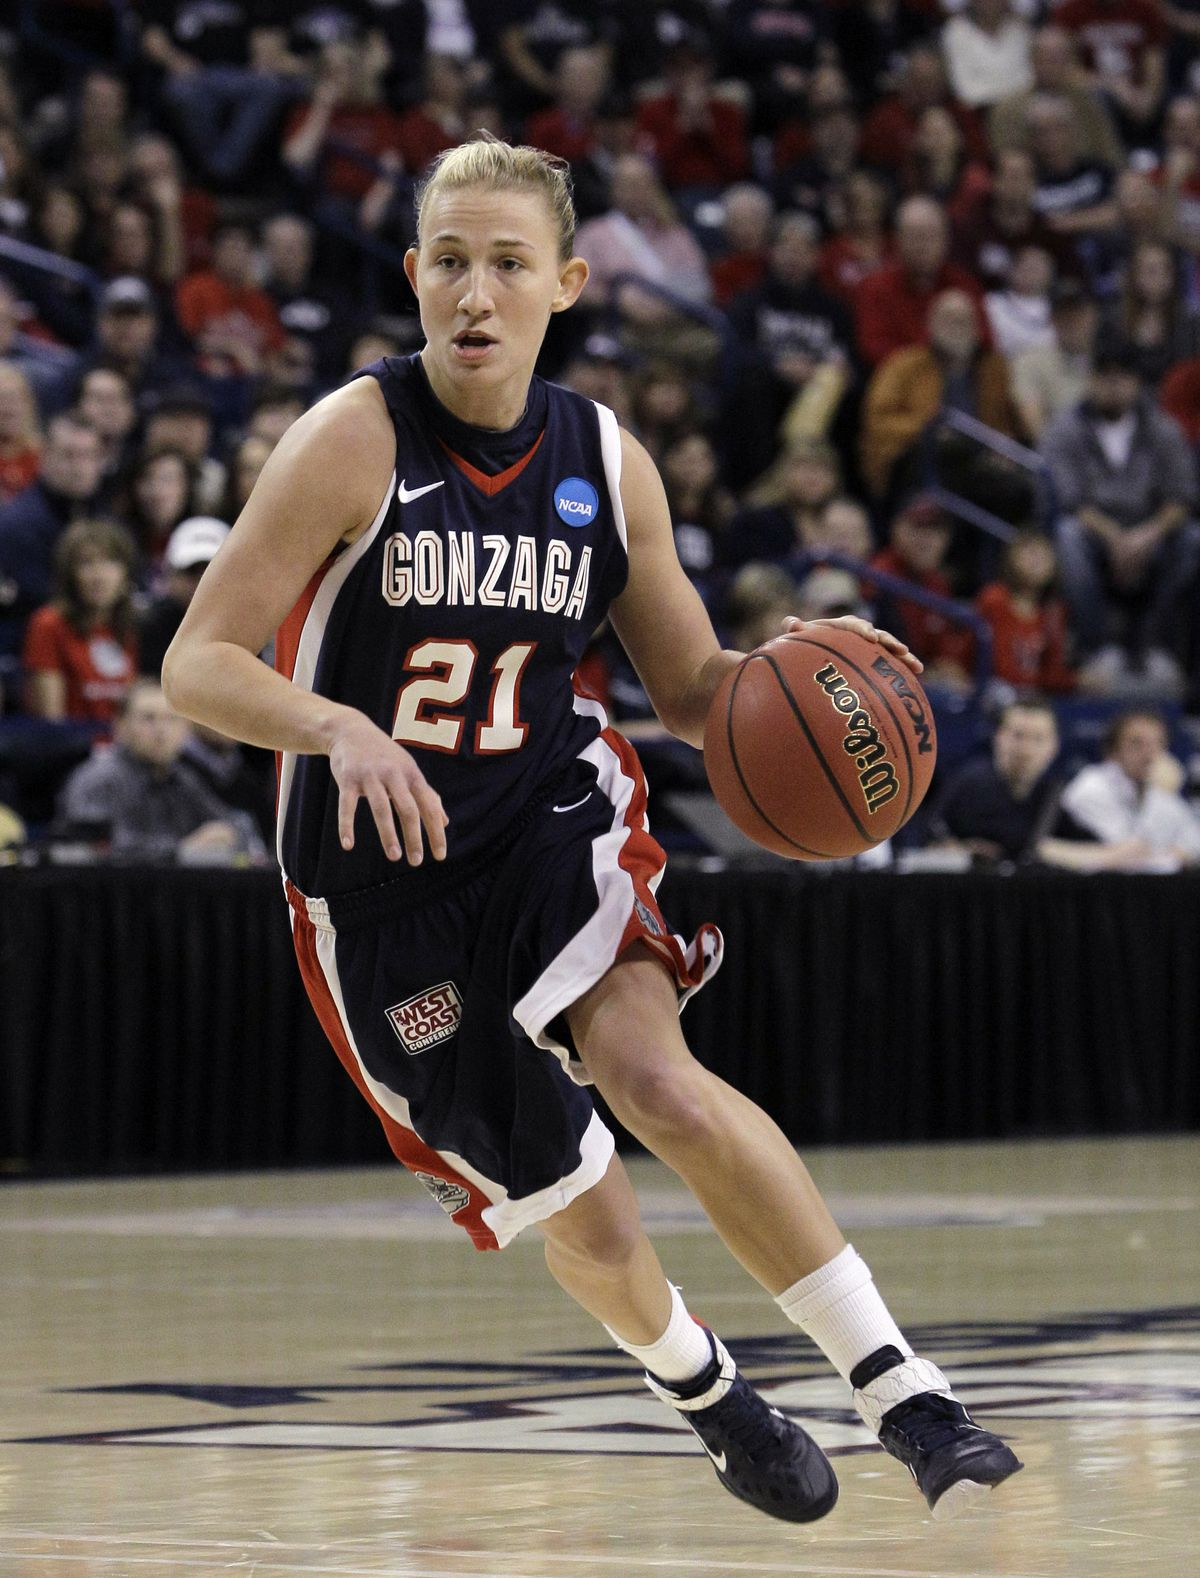 While at Gonzaga, Courtney Vandersloot became the first player in NCAA history to score more than 2,000 points and total more than 1,000 assists.